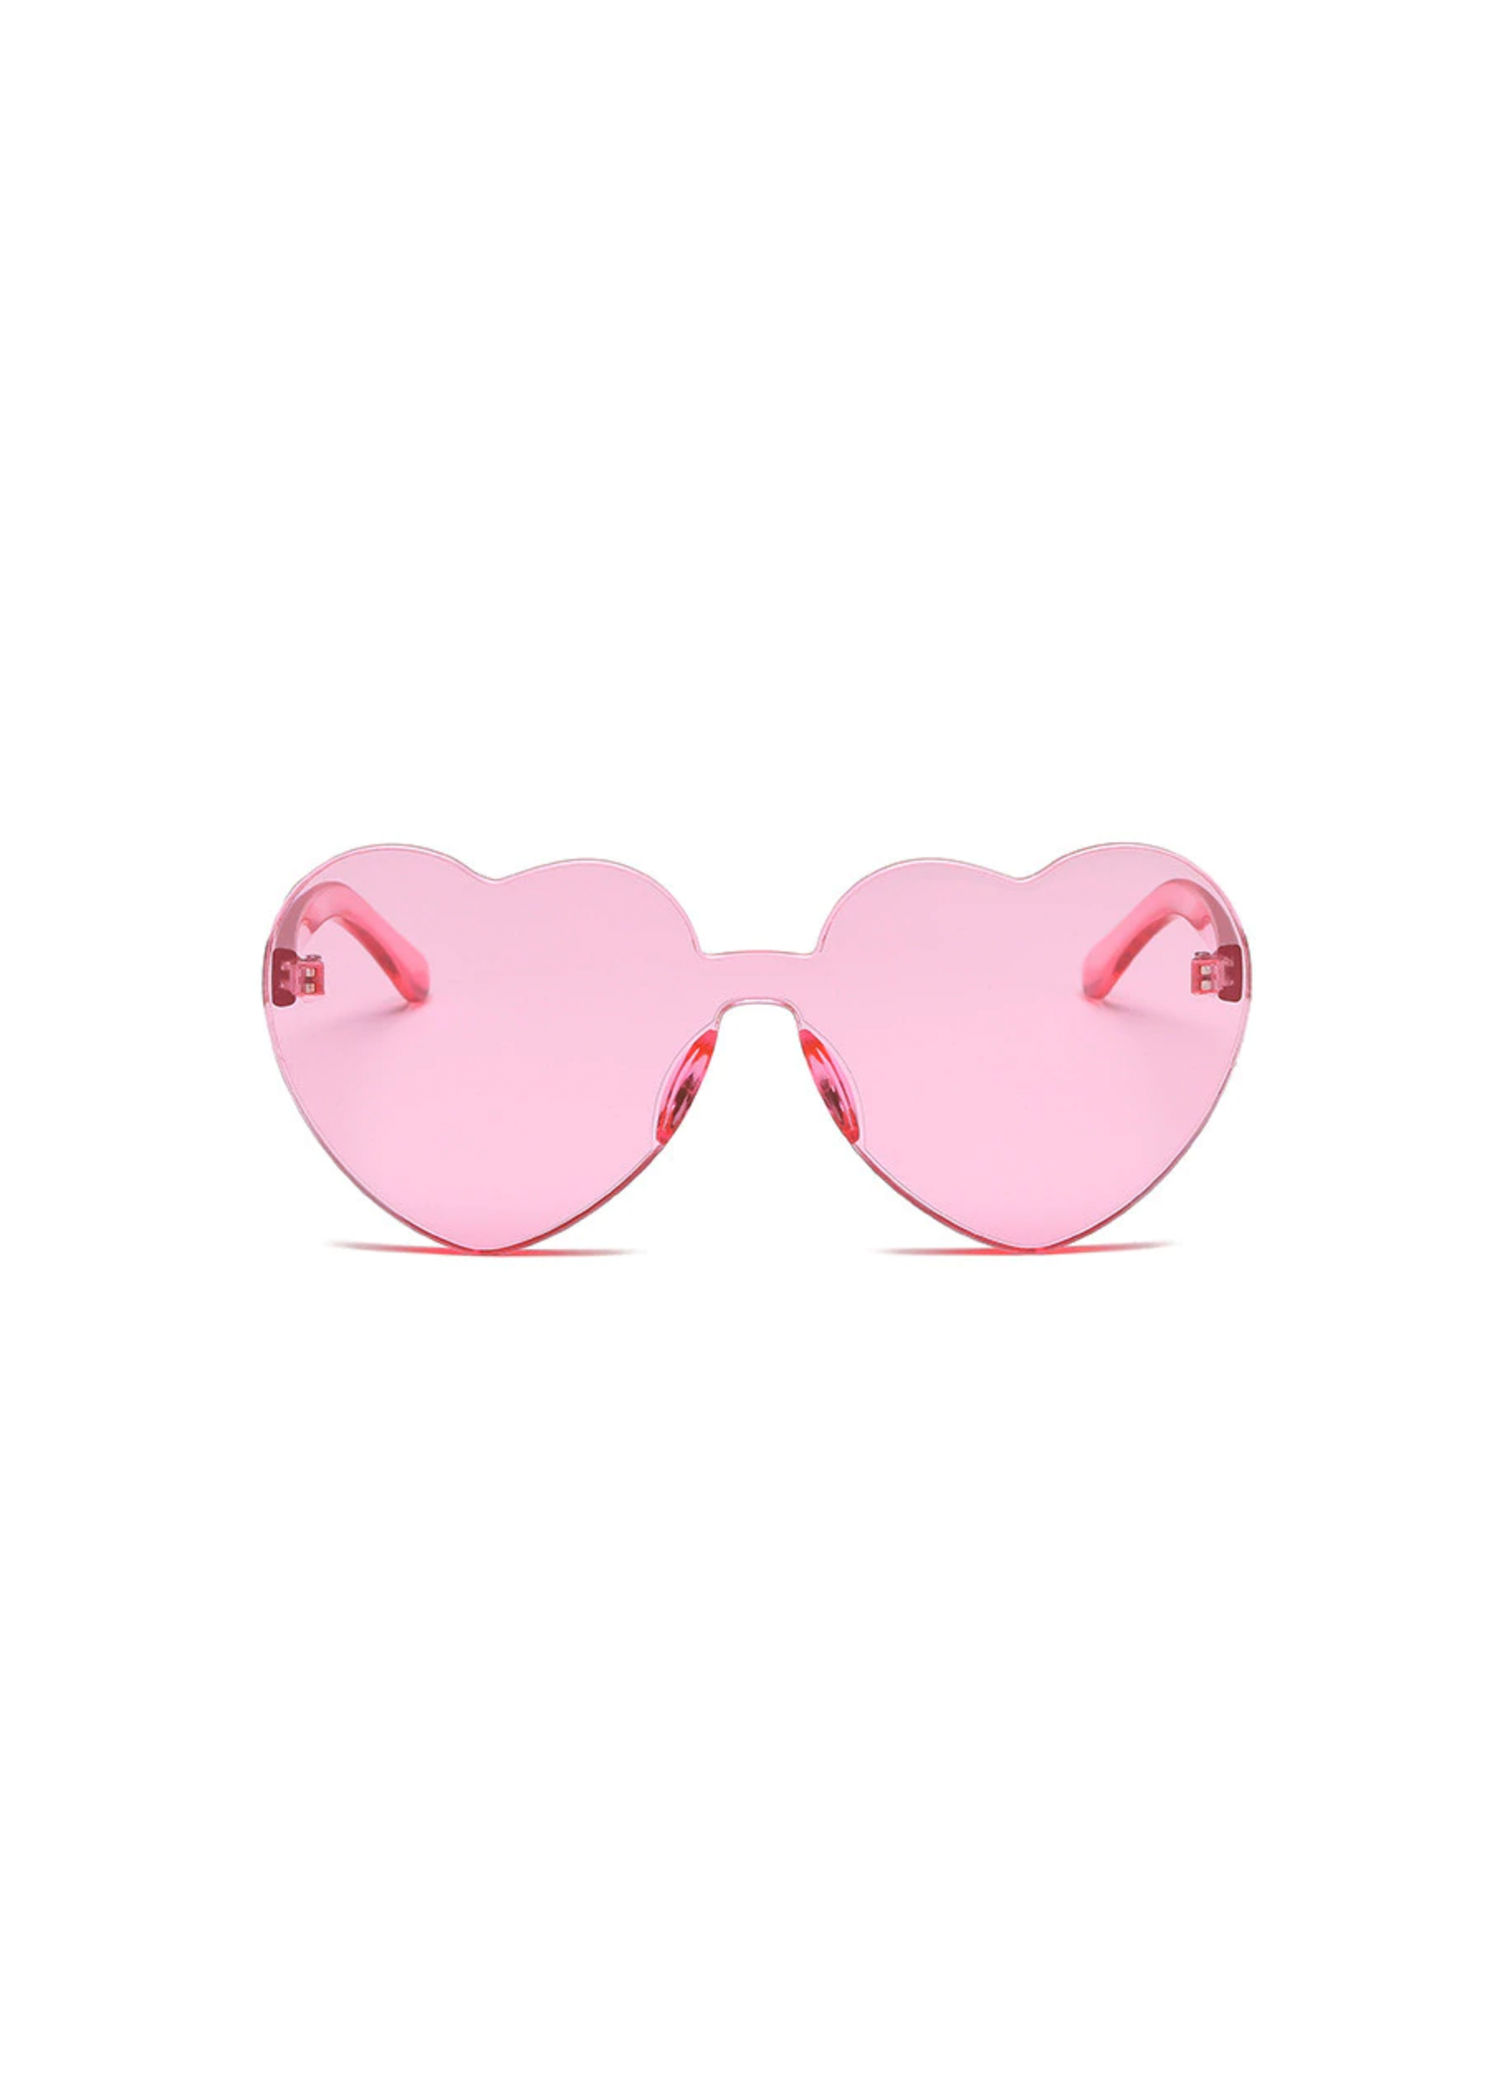 heart eye glasses in pink